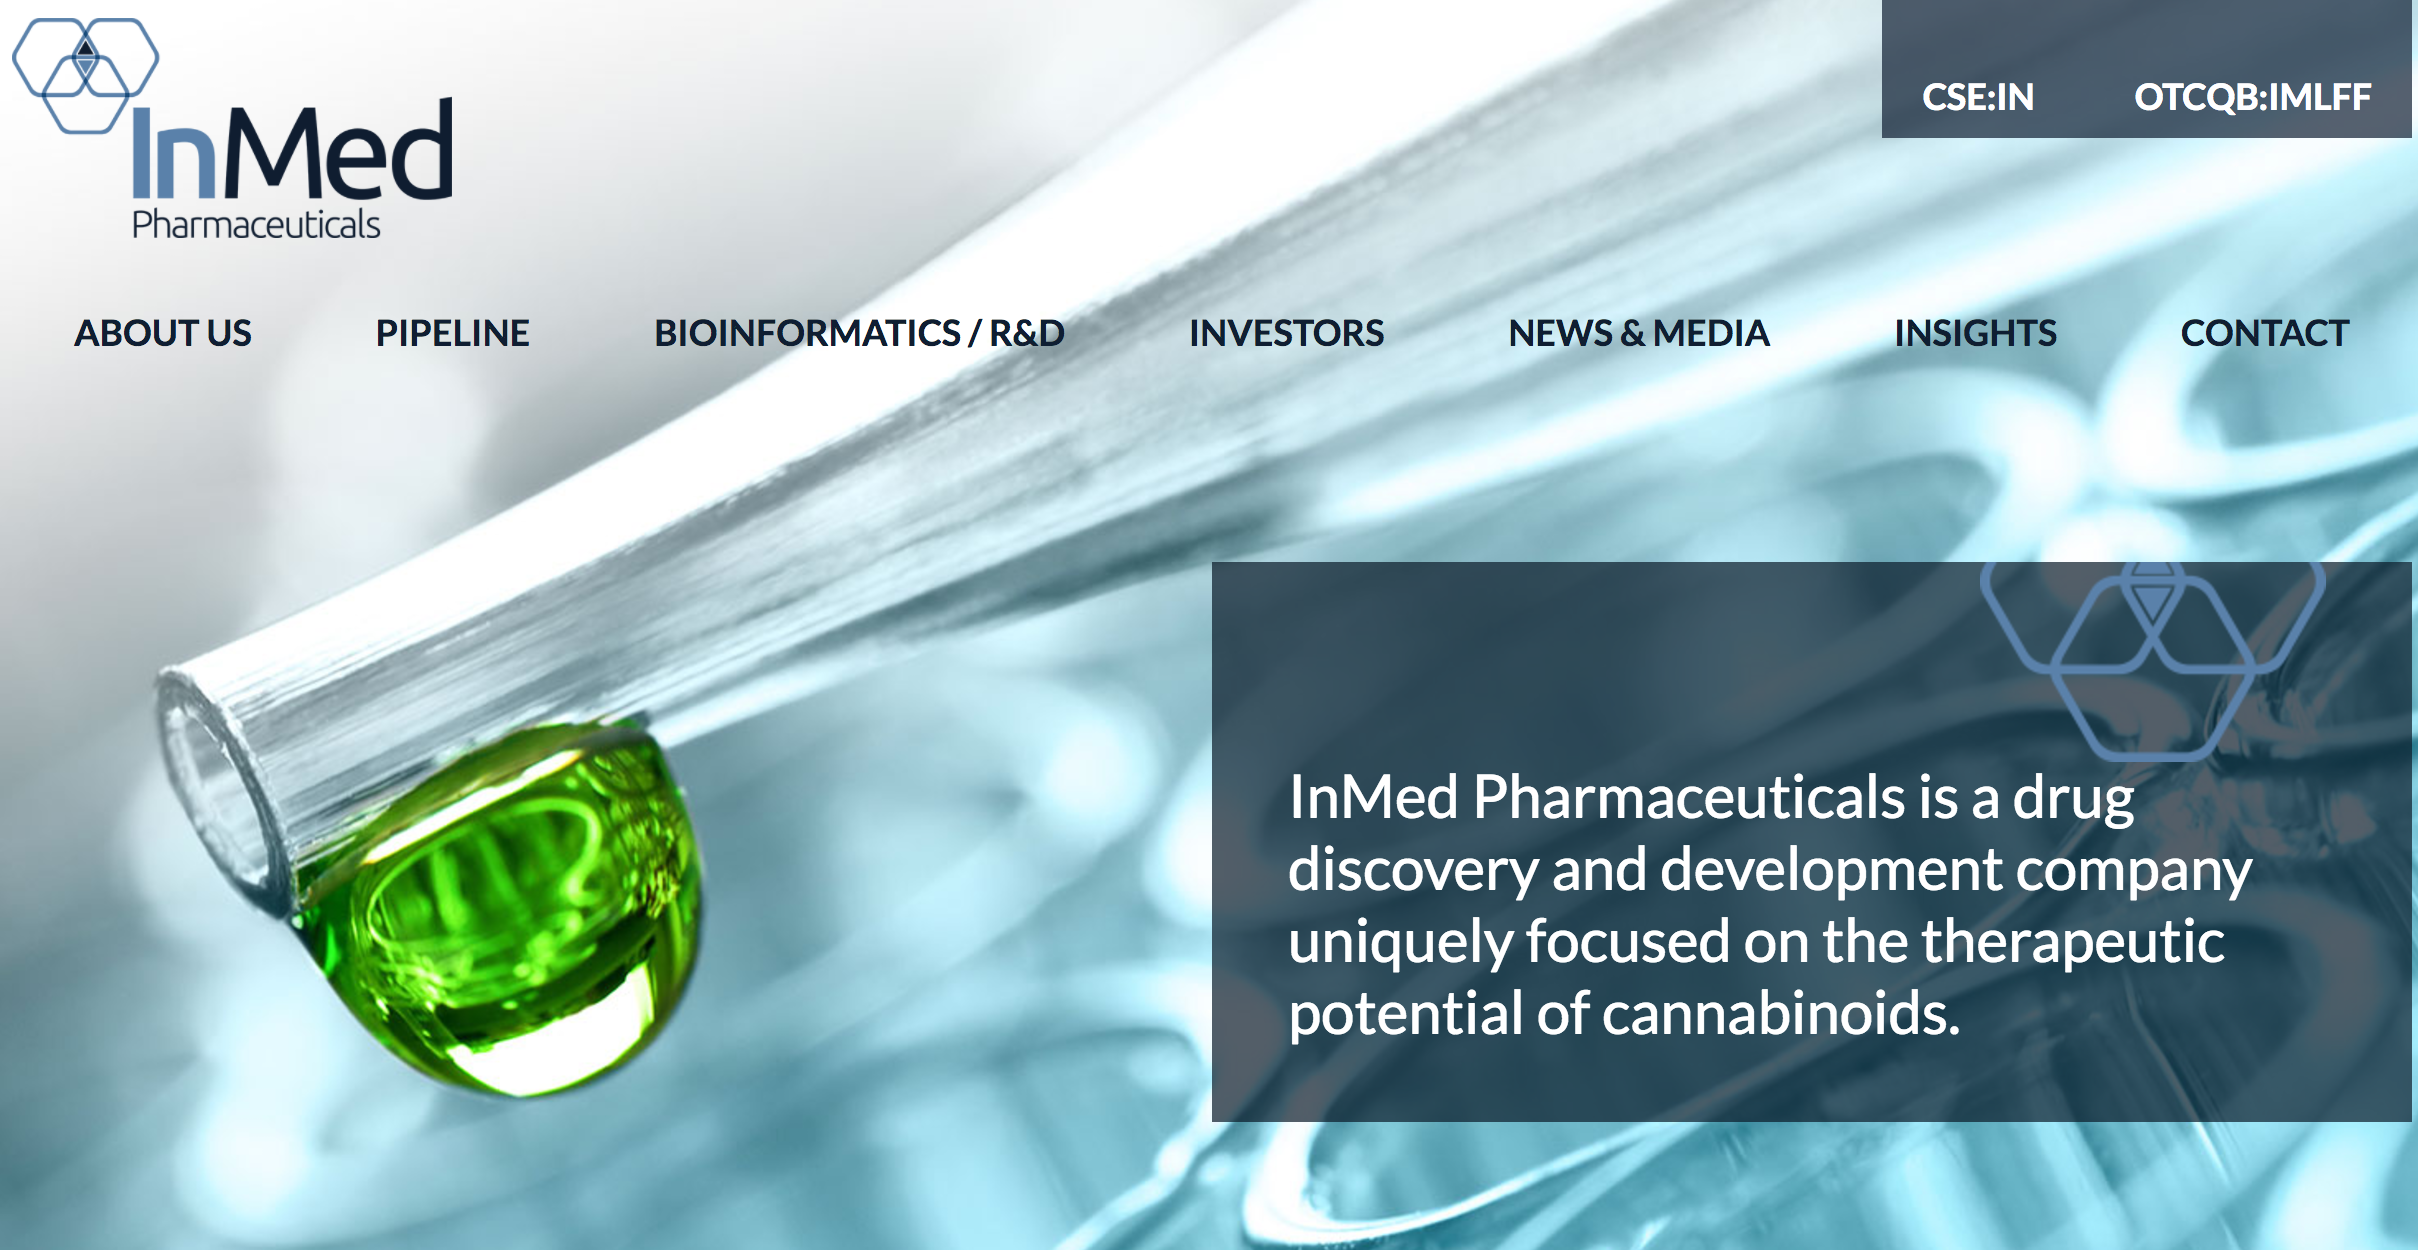 INMED (CSE: IN) (OTC: IMLFF) RAISES $5.75 MILLION THROUGH UNDERWRITTEN FINANCING